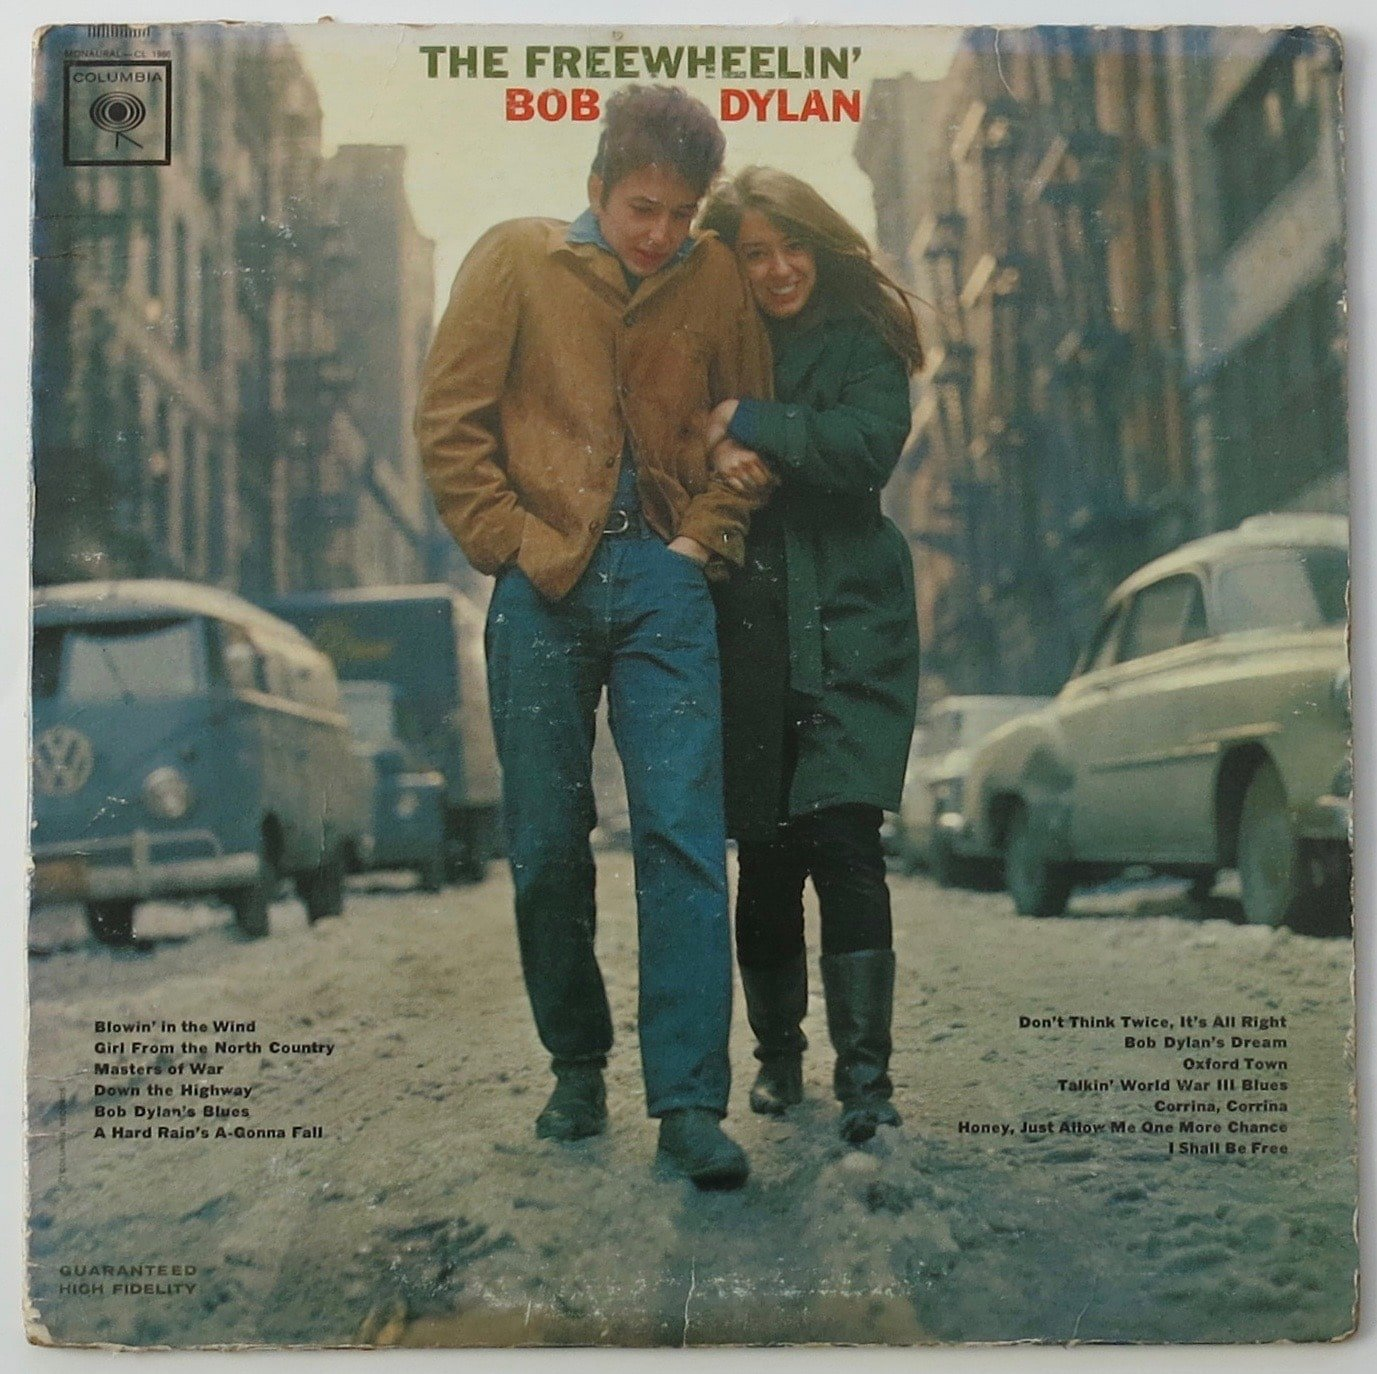 A Copy of 'The Freewheelin' Bob Dylan' With The Four Withdrawn